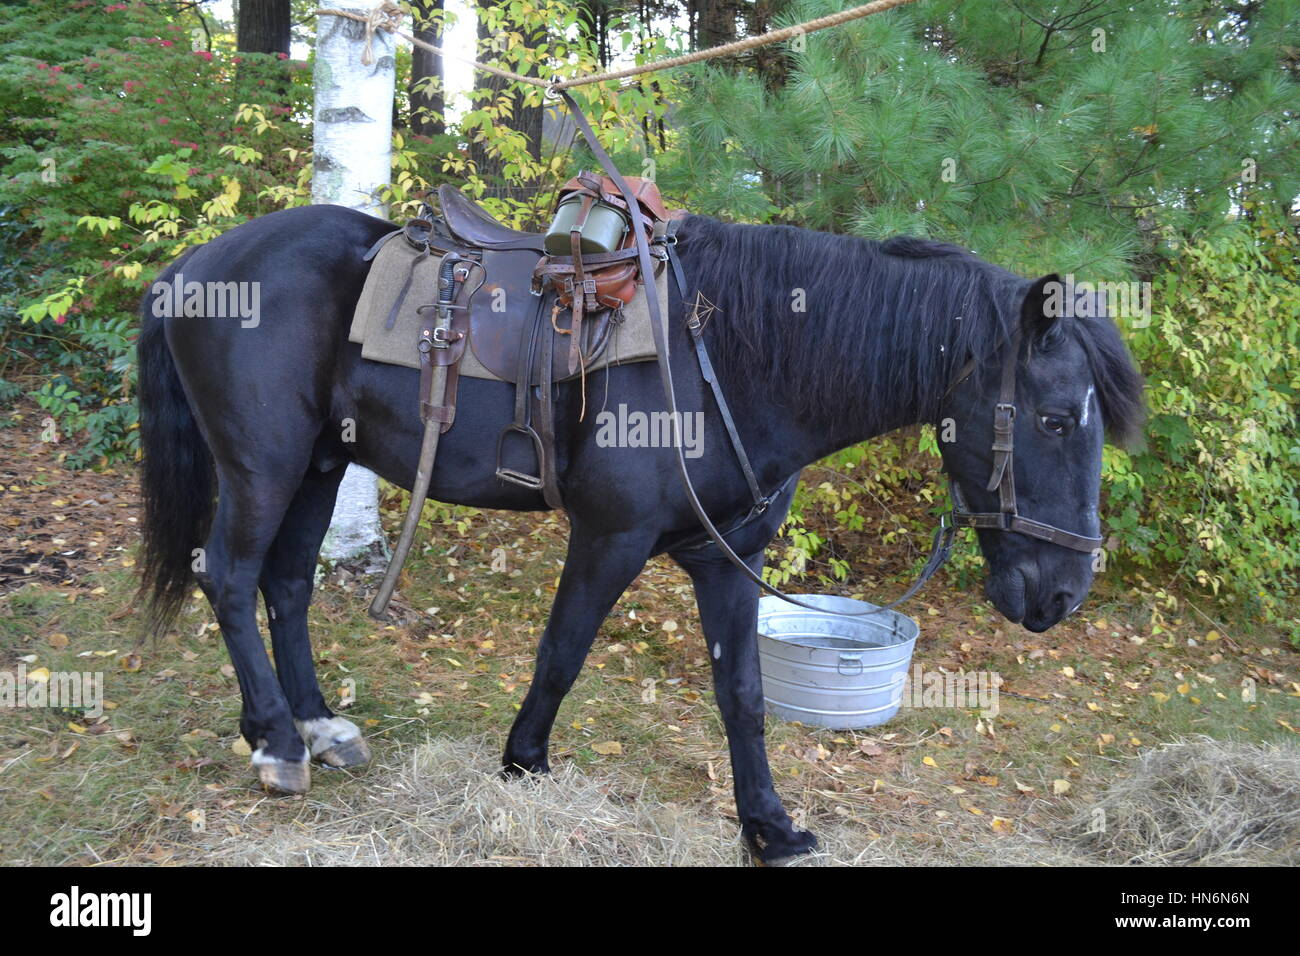 German cavalry horse, WW2 re-enactment, Massachusetts, U.S.A. - Stock Image